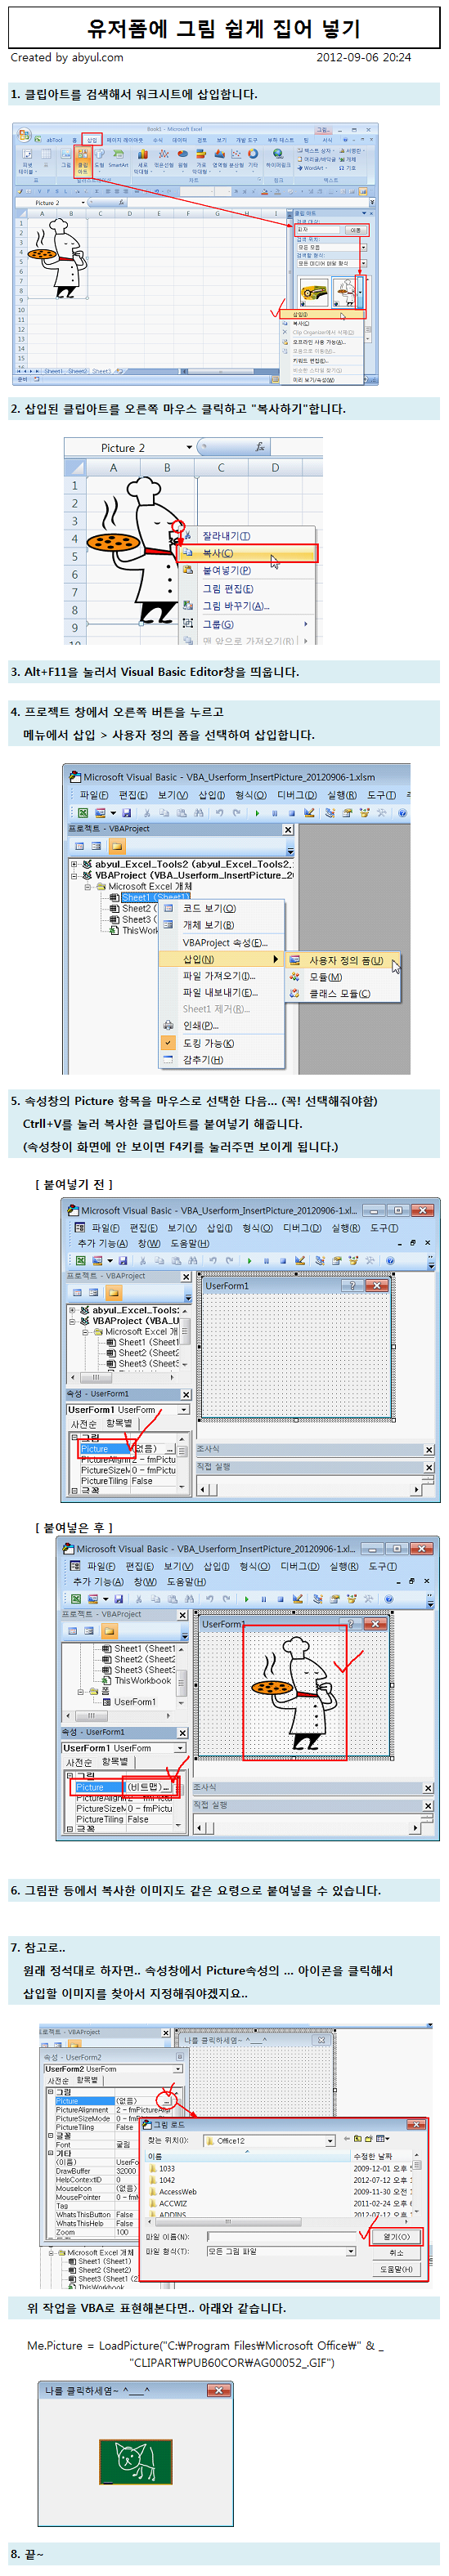 VBA_Userform_InsertPicture_20120906-1.png